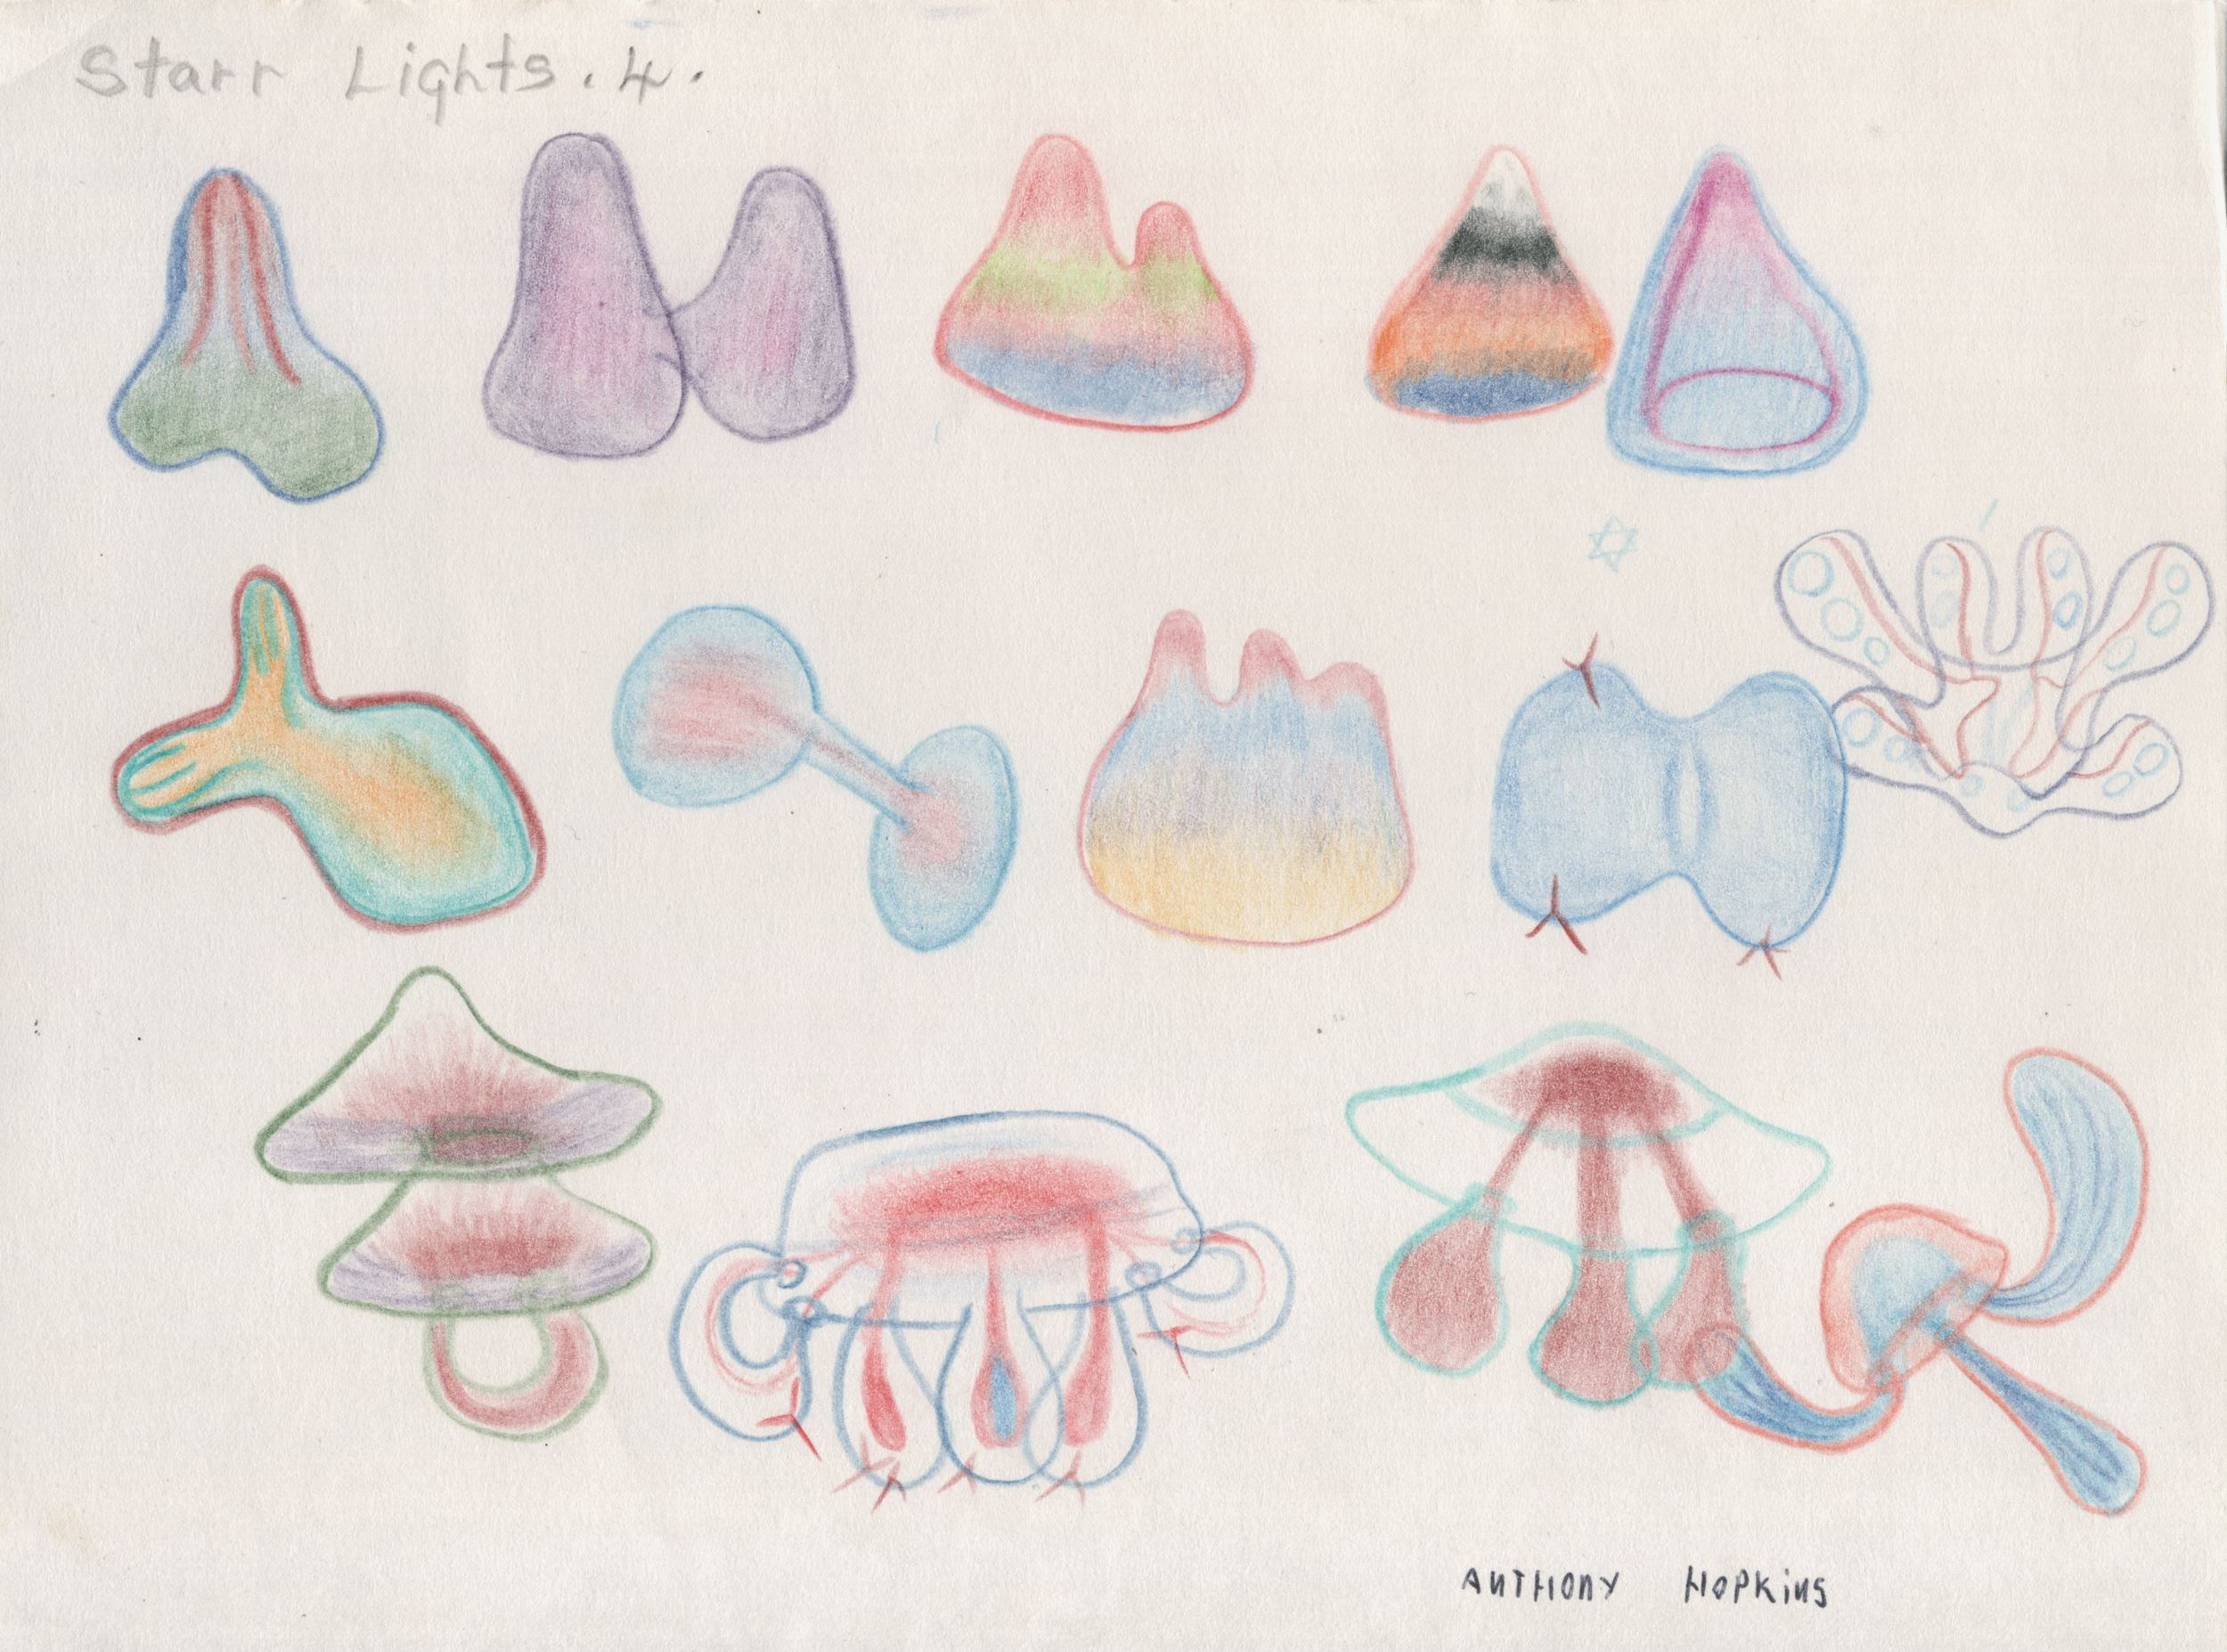 Anthony Hopkins    Star Lights 4, (131)  , 1998 Colored pencil/paper 7 x 9.5 inches 17.8 x 24.1 cm AH 48